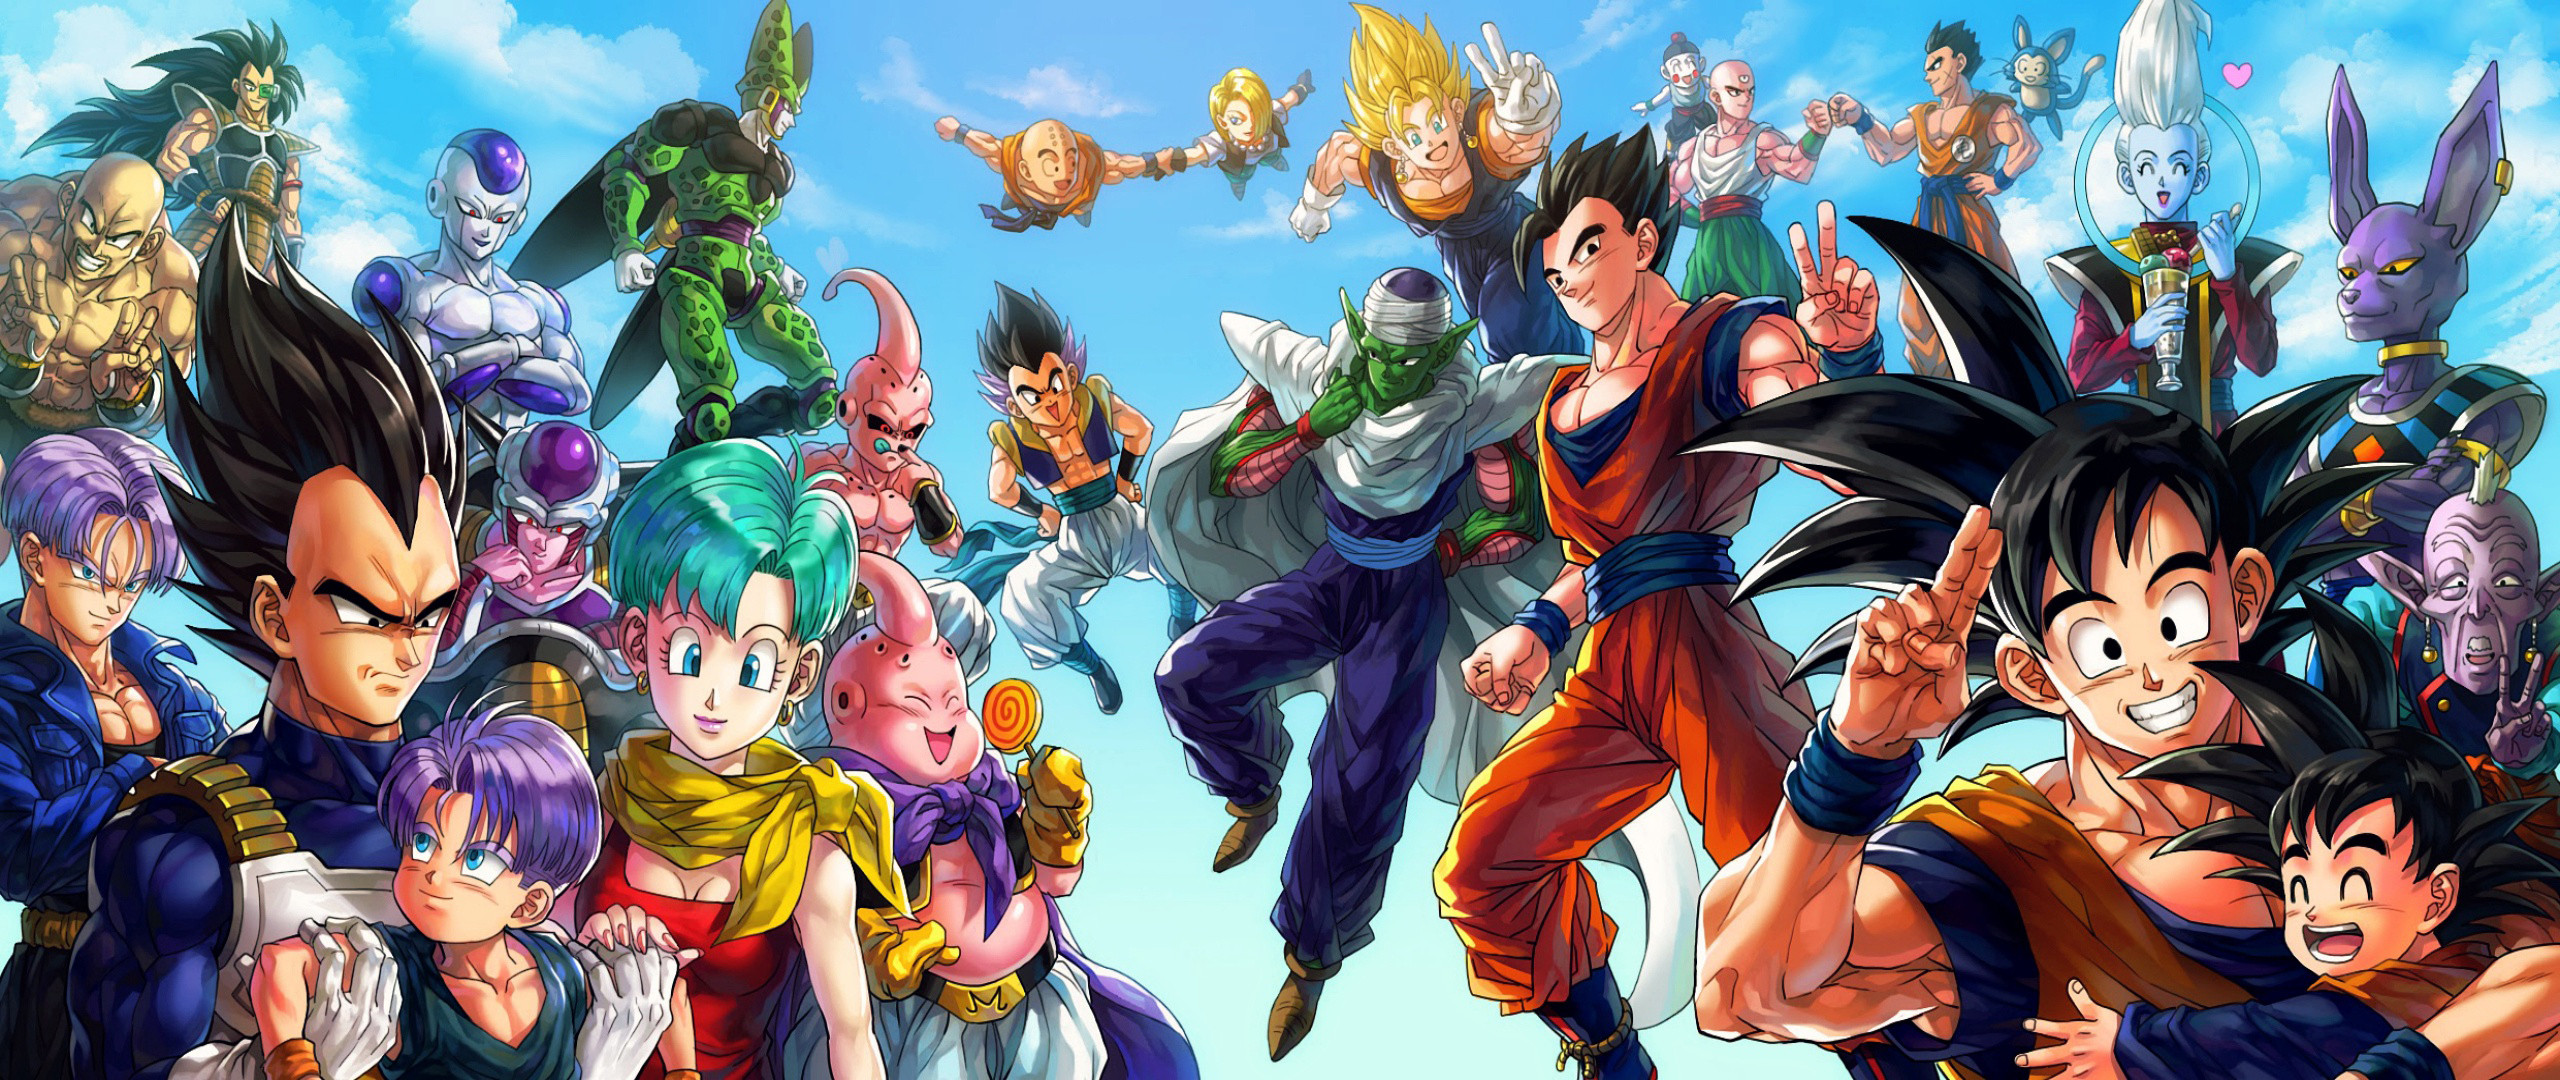 Die 72 Besten Dragon Ball Wallpapers